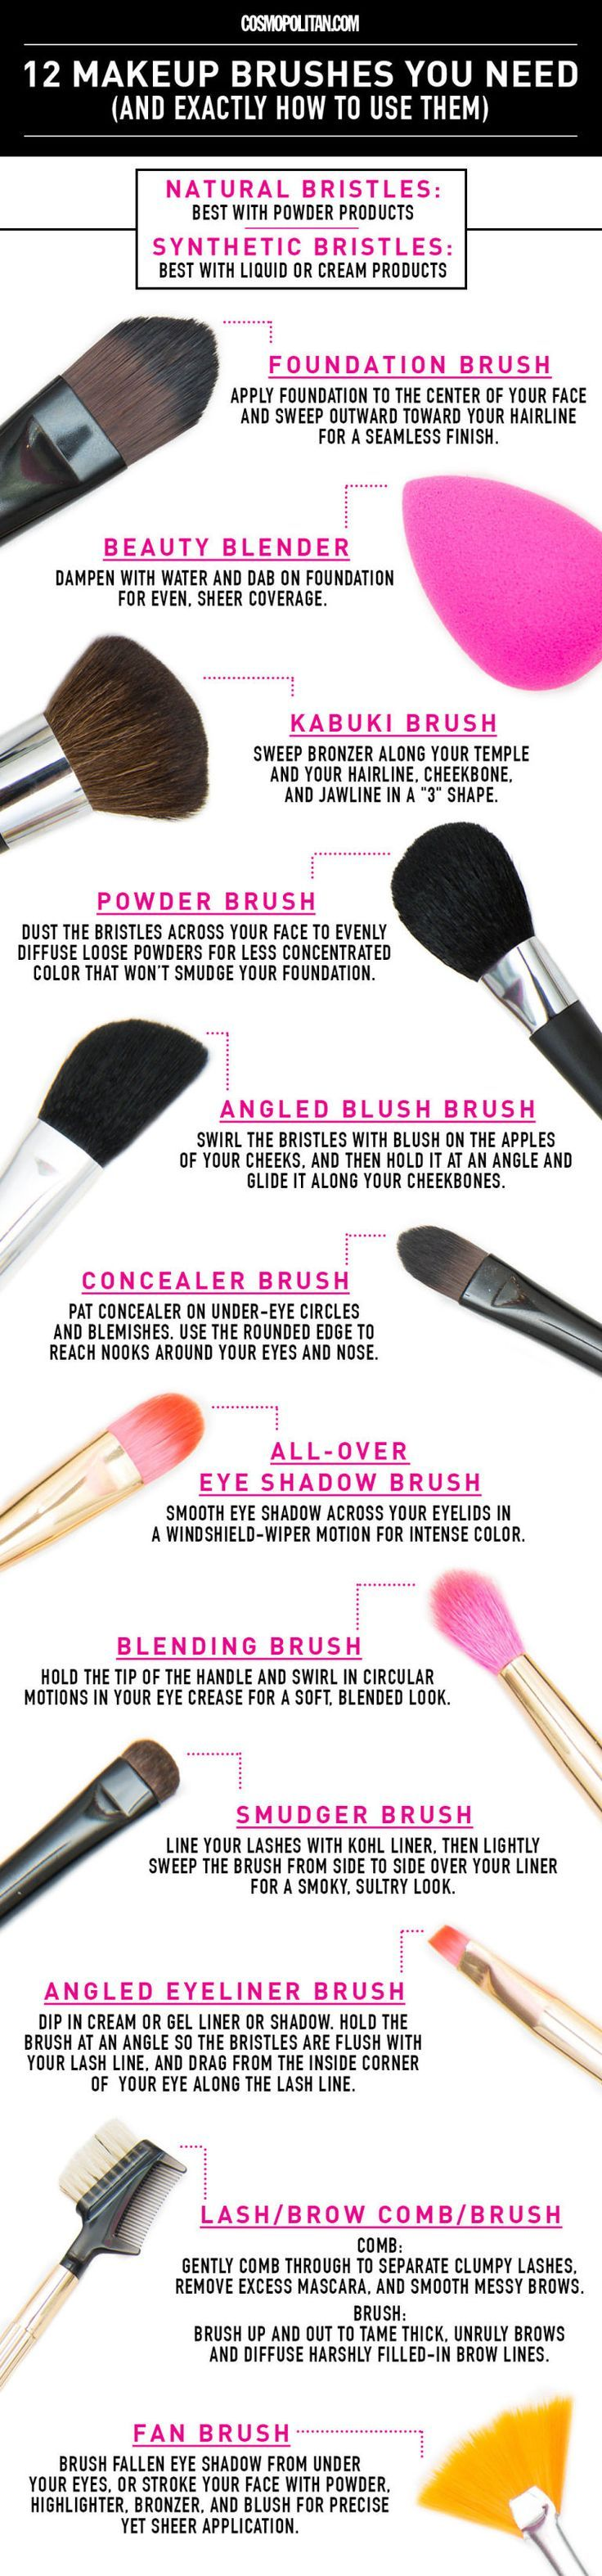 THE BEST MAKEUP BRUSHES  GUIDE: Cosmopolitan.com rounded up the best and most he...